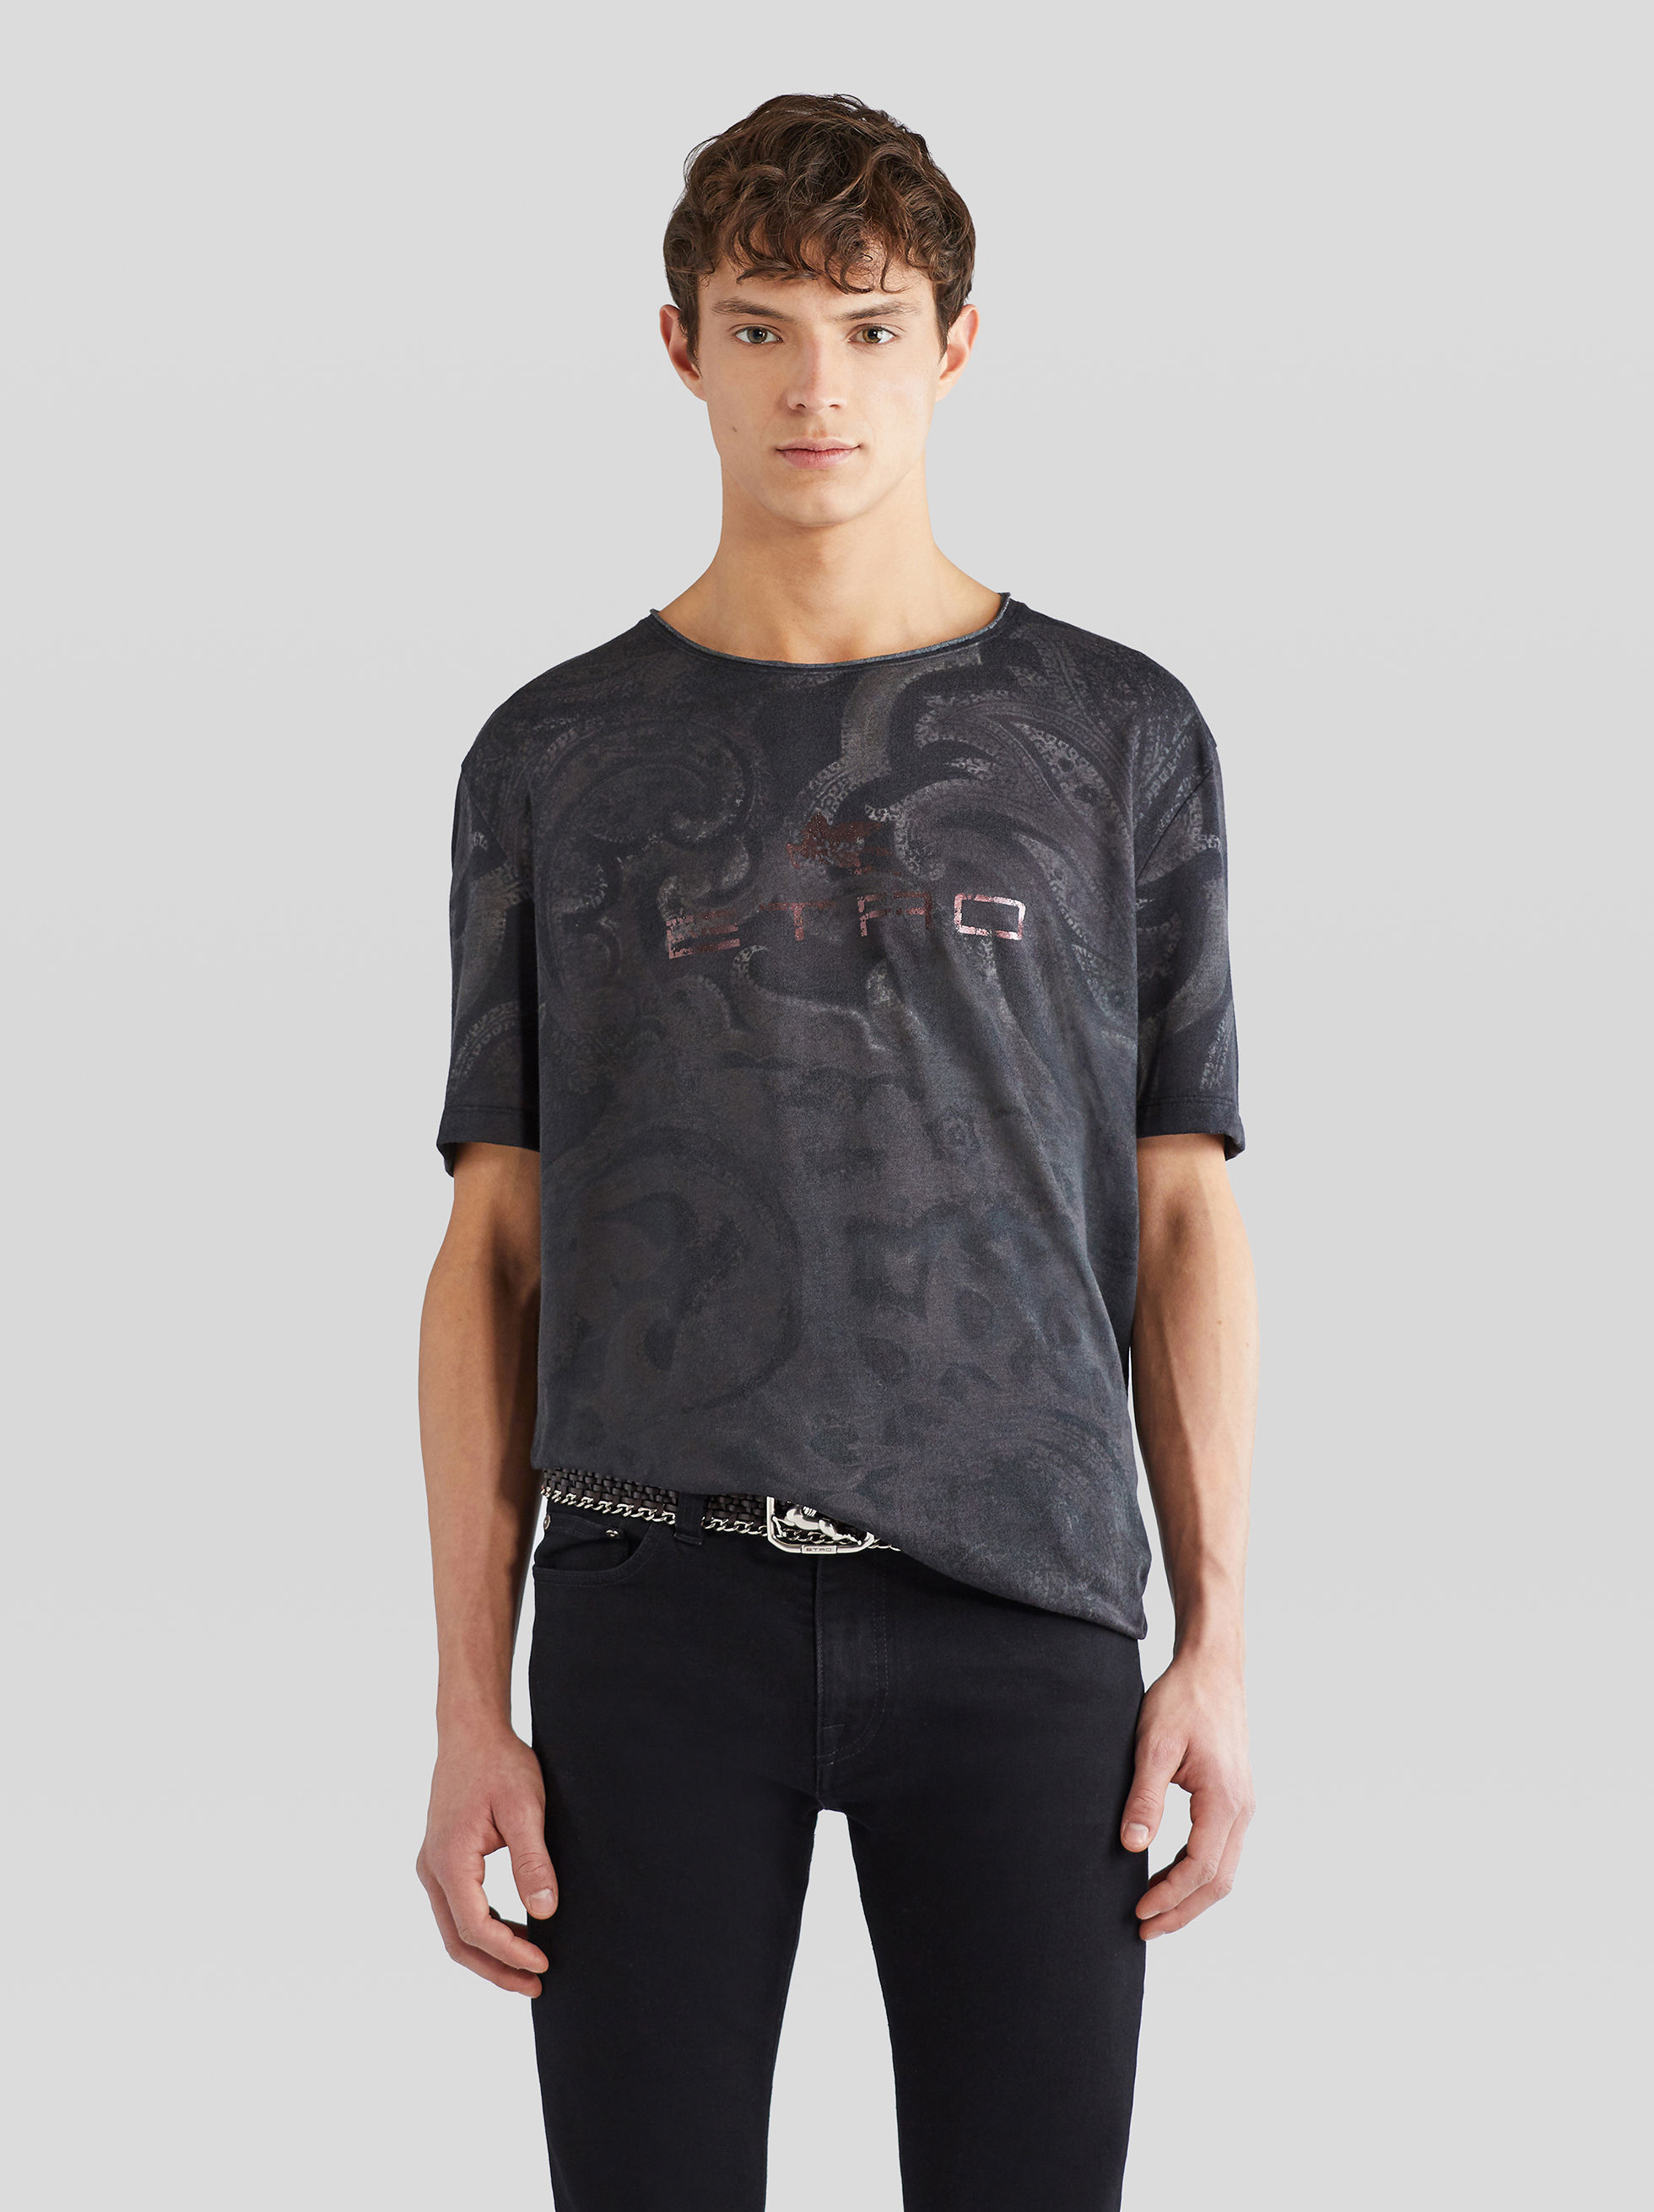 T-SHIRT WITH PAISLEY PRINT WITH PEGASO